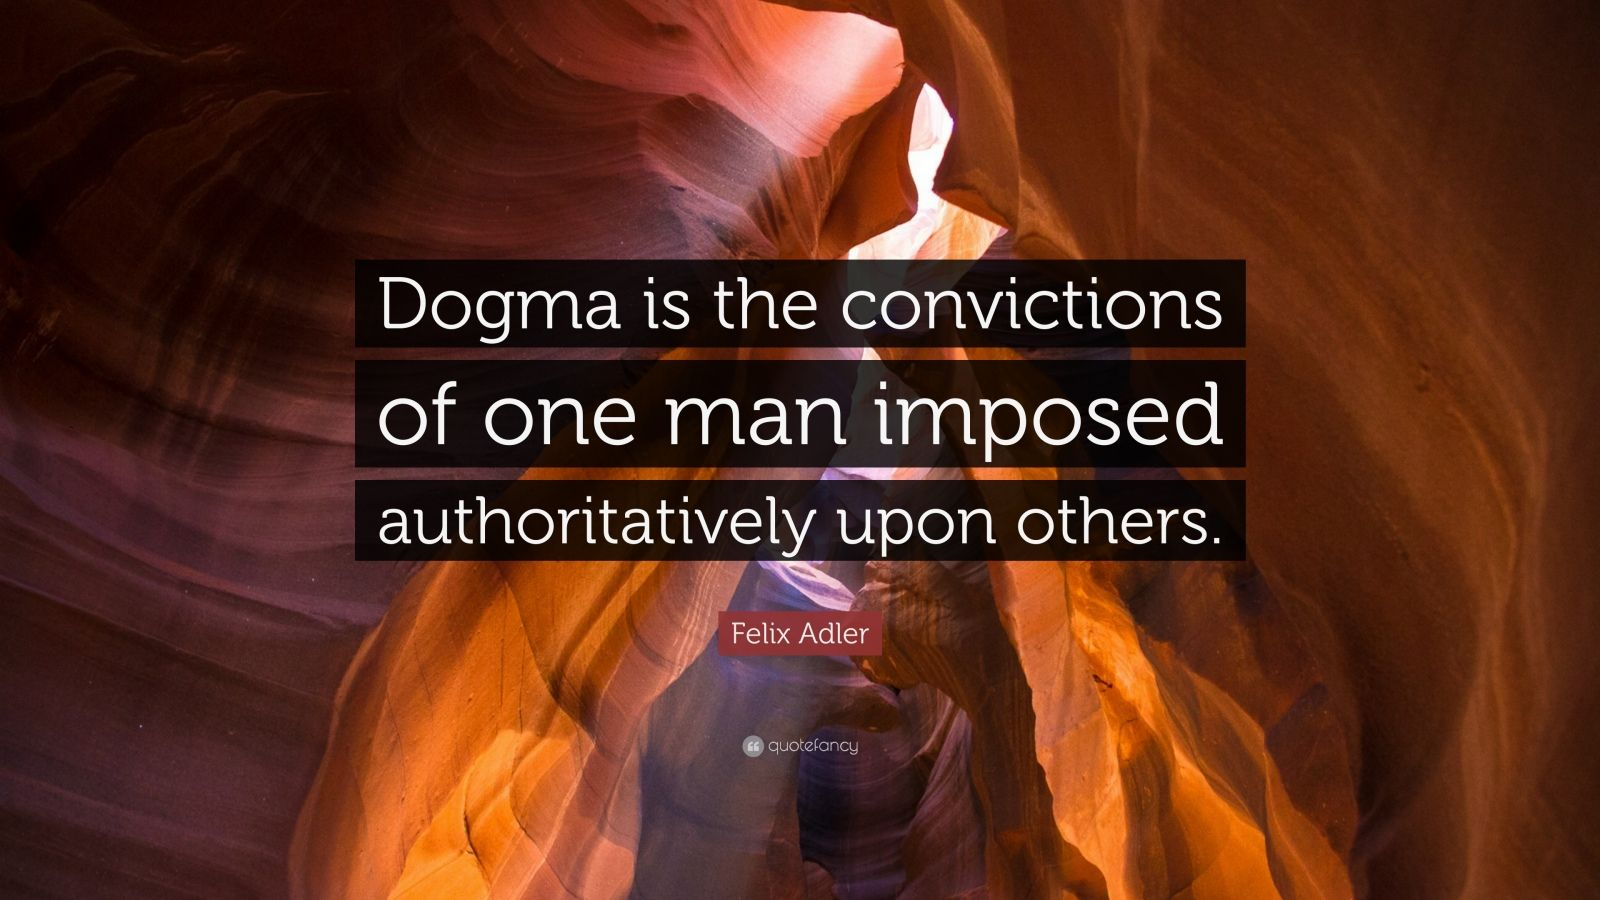 """Felix Adler Quote: """"Dogma is the convictions of one man imposed authoritatively upon others."""""""